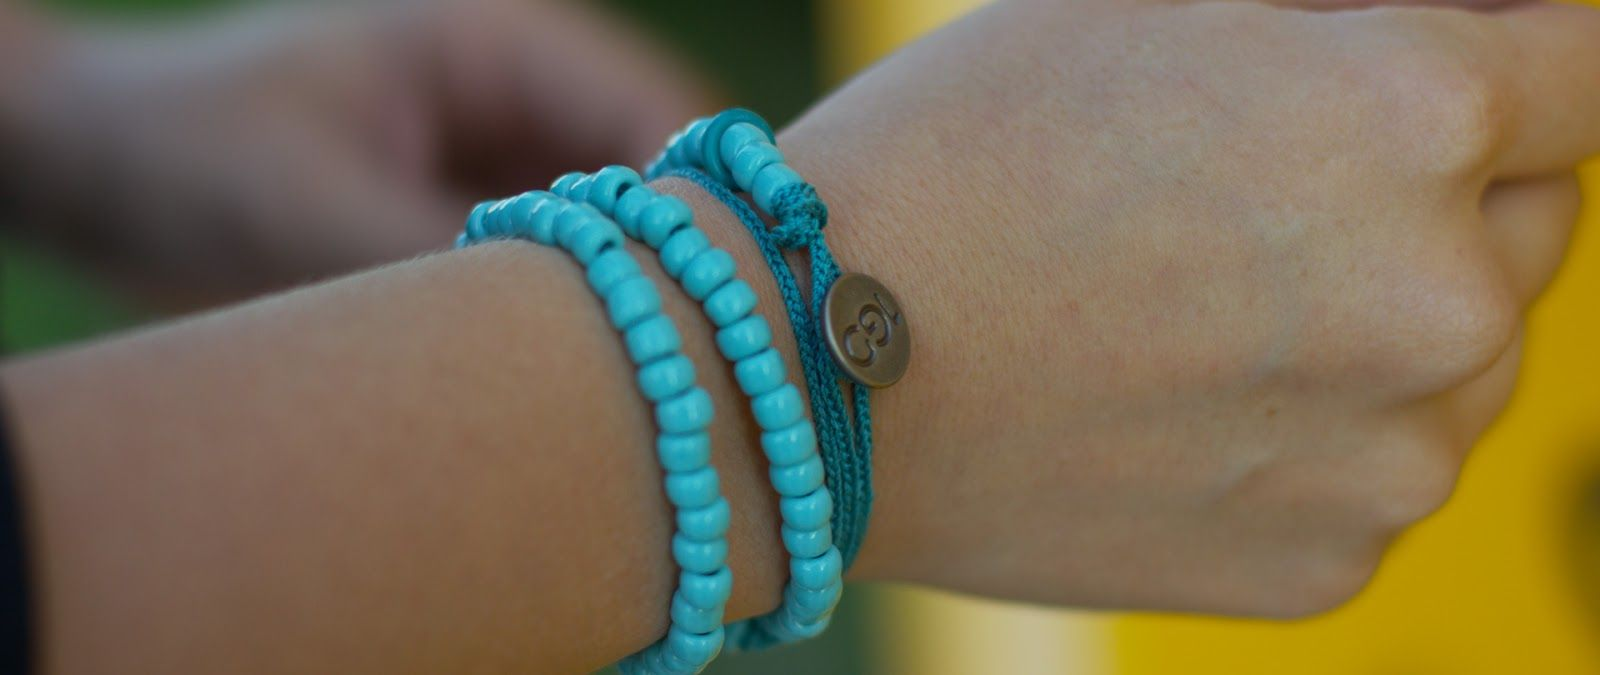 Adorable Beaded Bracelets That Mean Something 1gd Deedaday How To Feel Beautiful Beauty Hair Beauty